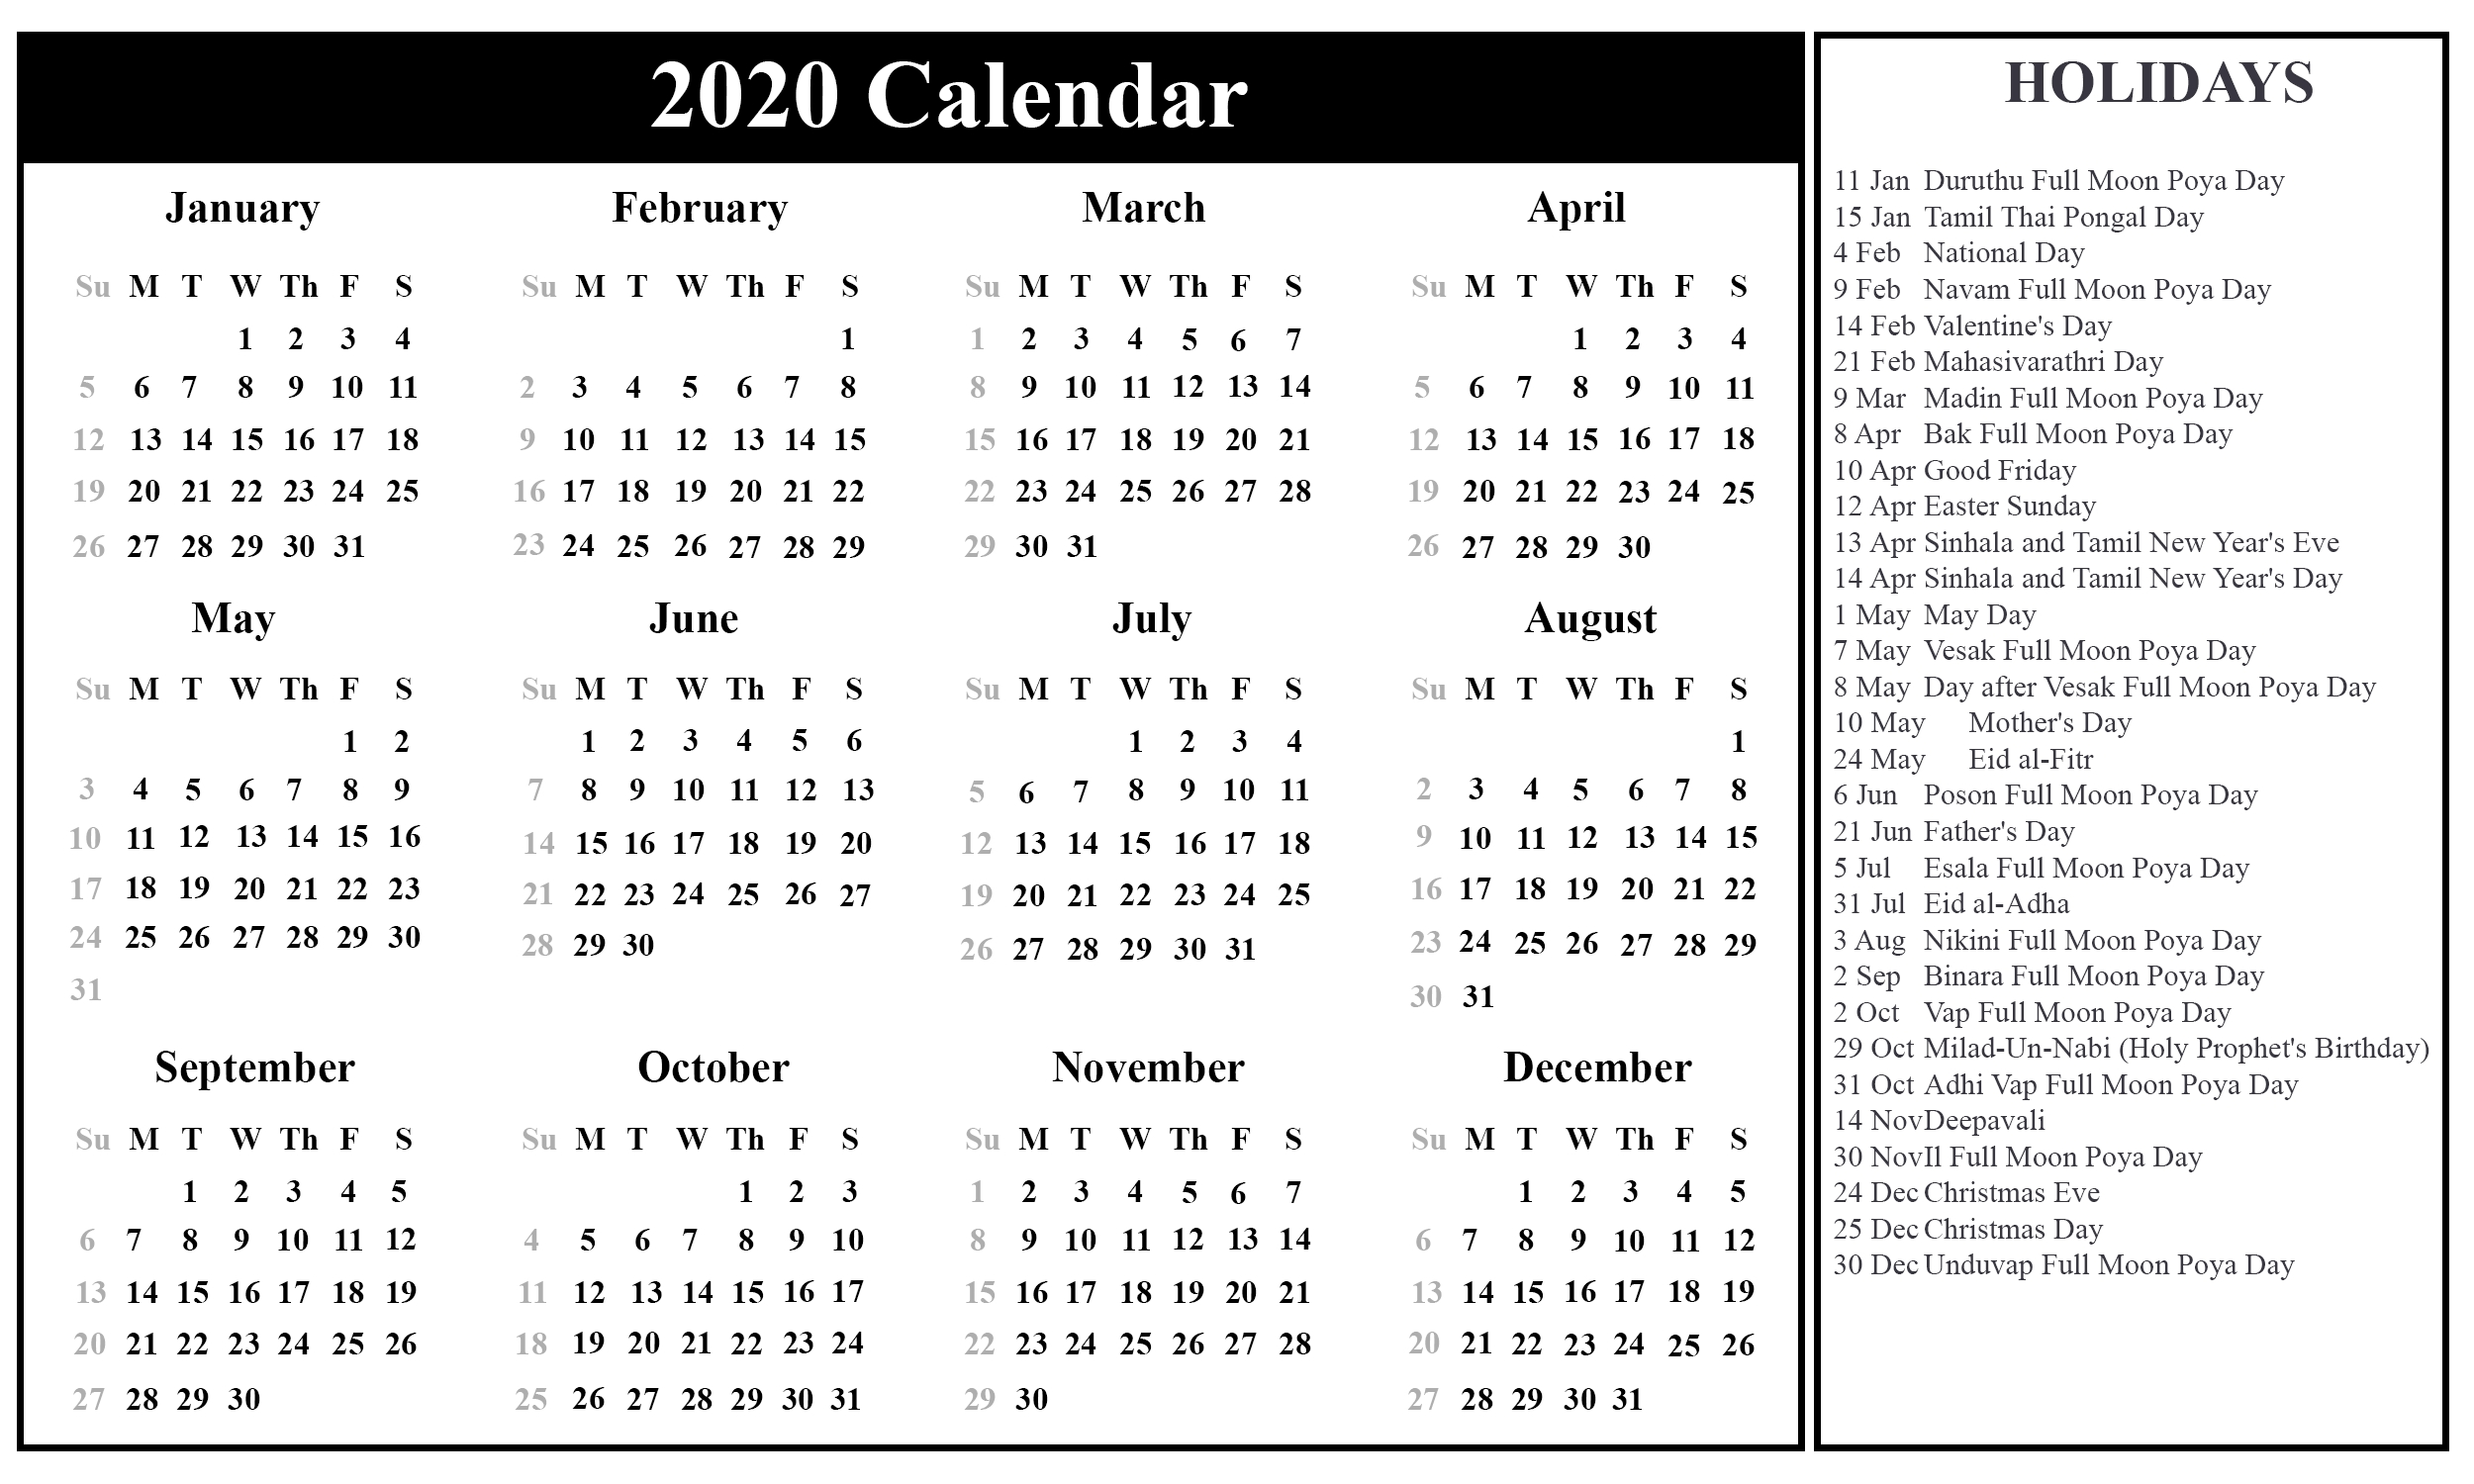 Free Printable Sri Lanka Calendar 2020 With Holidays In Pdf-Mercantile Holidays In 2020 Sri Lanka